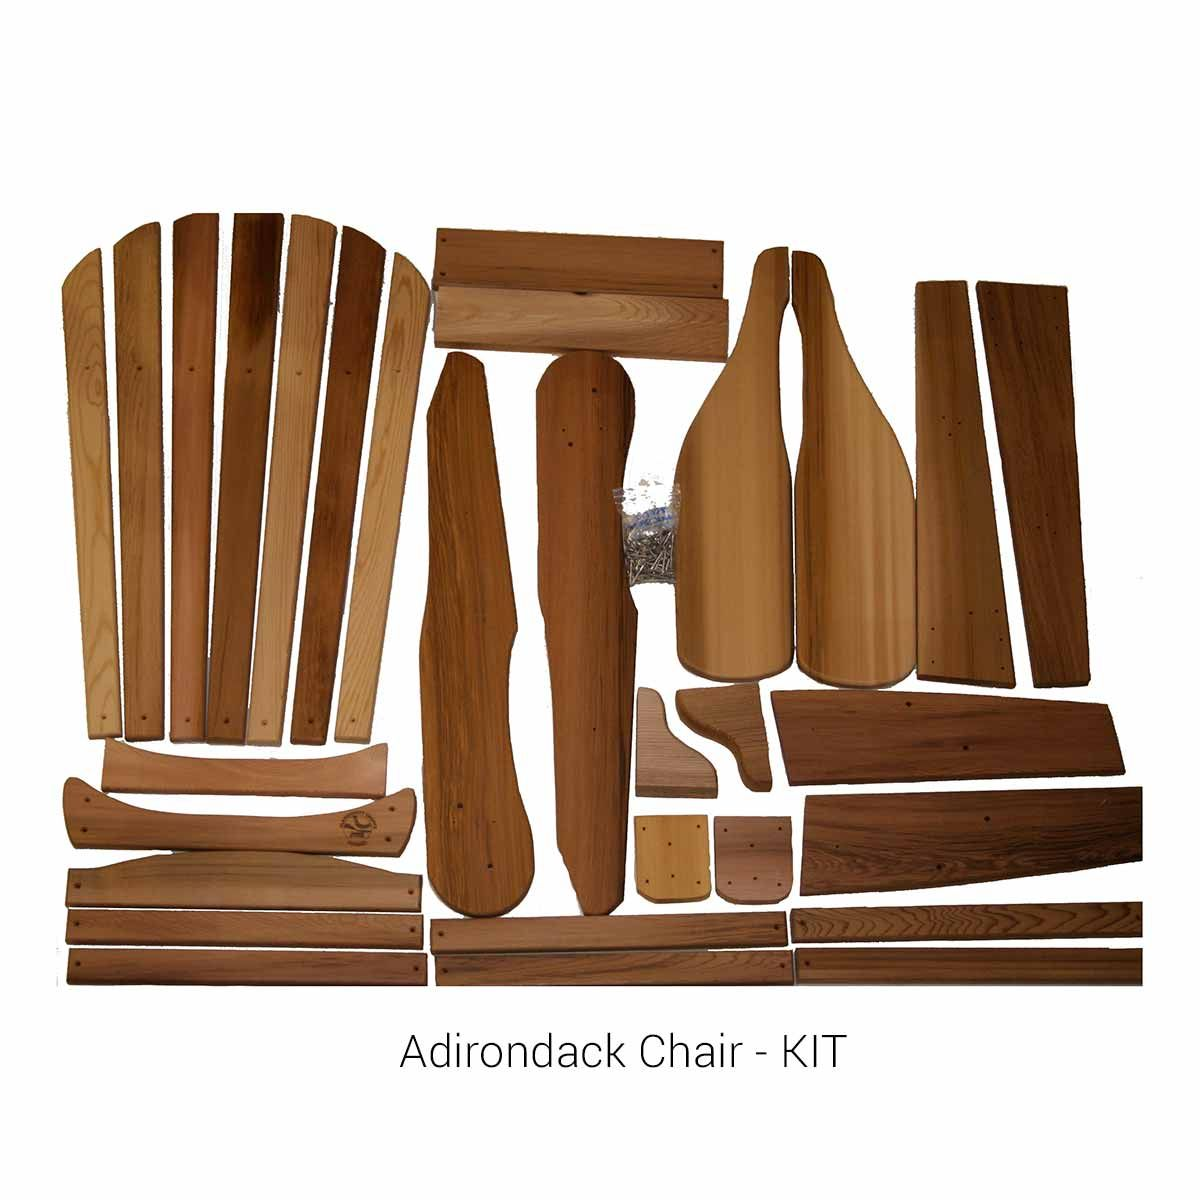 adirondack chair kit stand up desk option save on shipping if you don t mind assembling your own and still want top quality craftsmanship